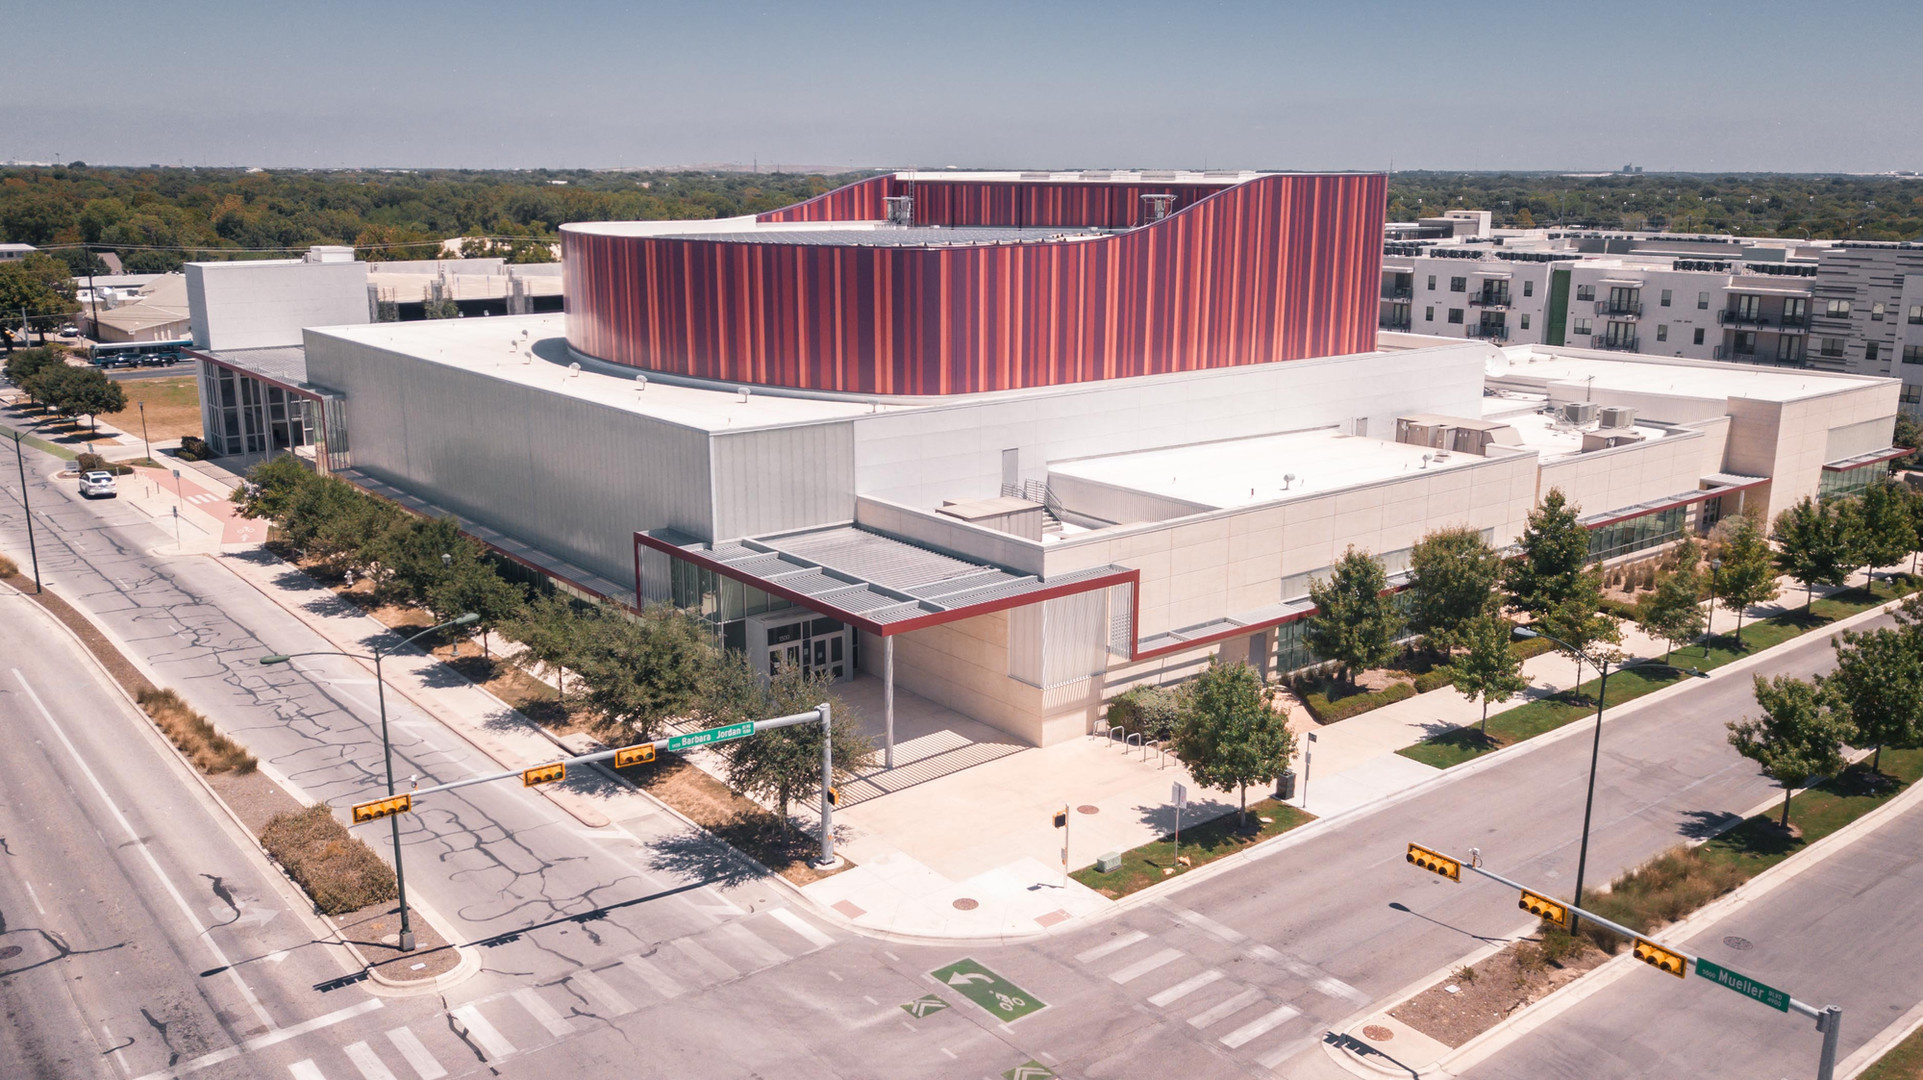 Terradyne provided Construction Materials Testing services to the AISD Performing Arts Center in Austin Texas.